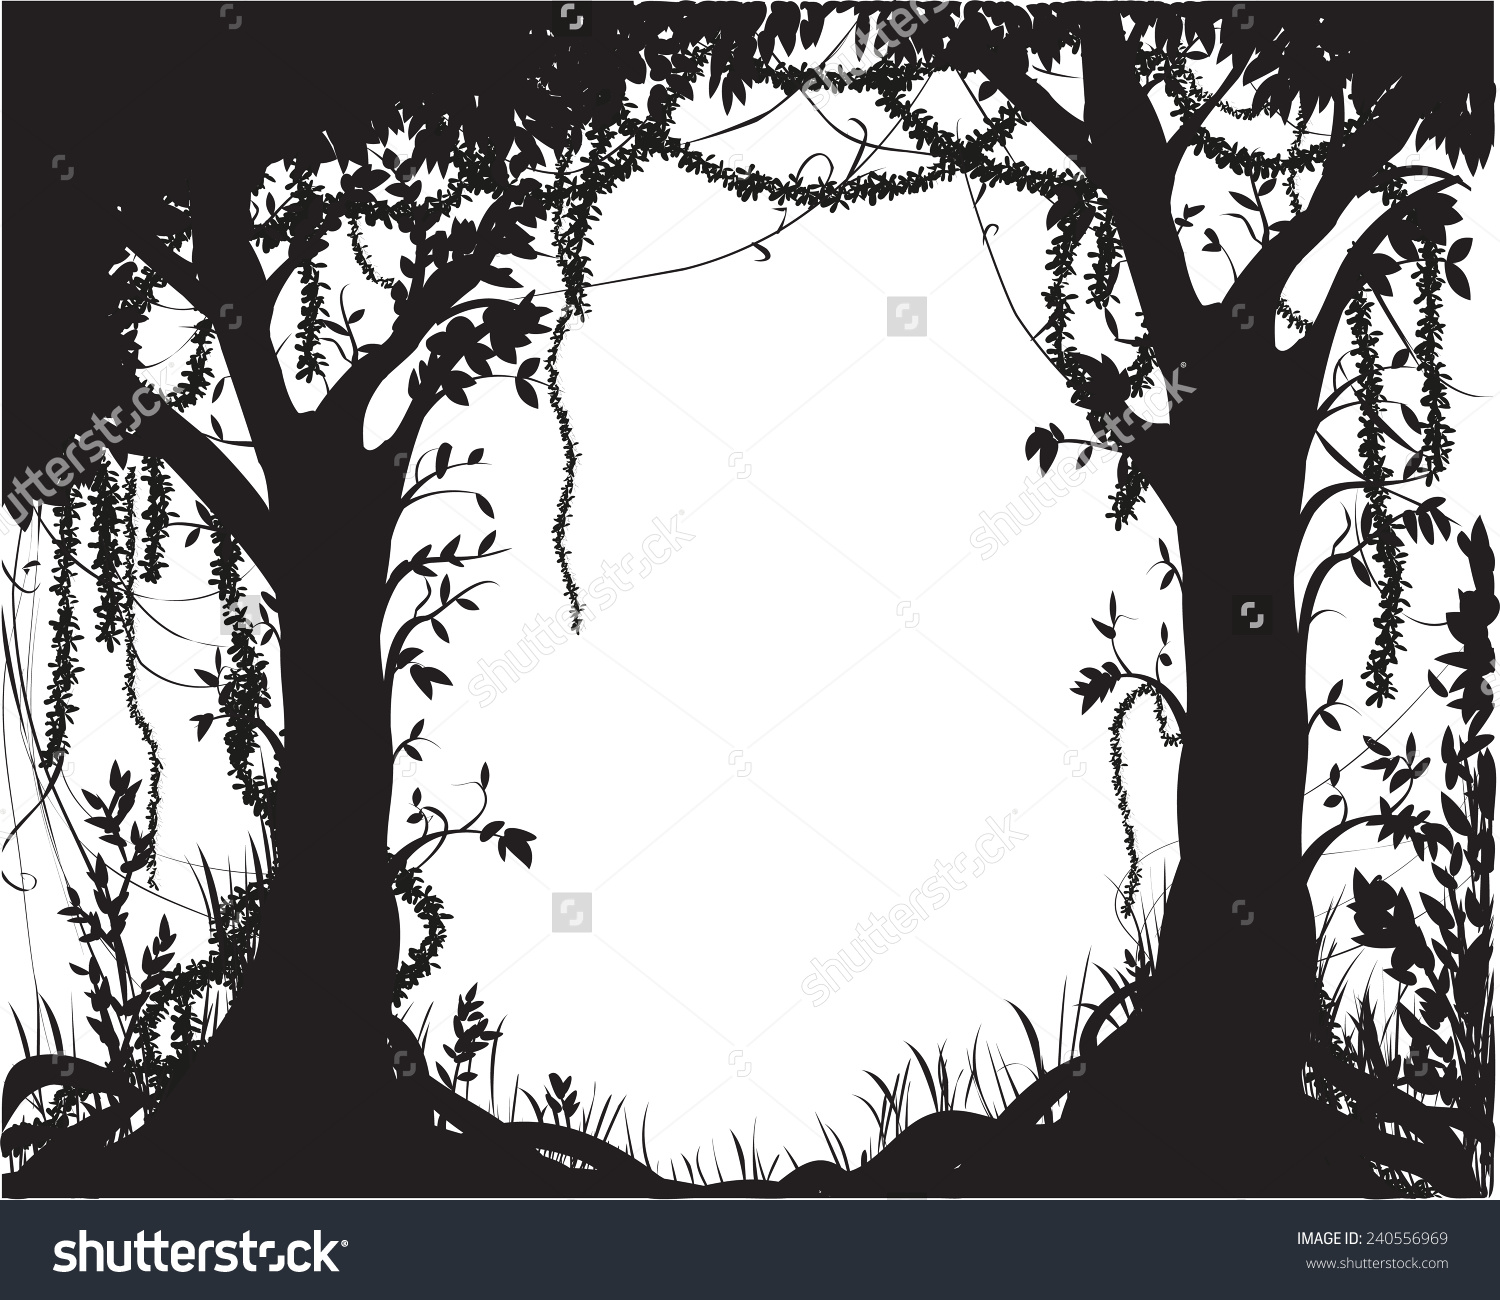 Thicket Deep Fairy Forest Silhouette Jungle Stock Vector 240556969.